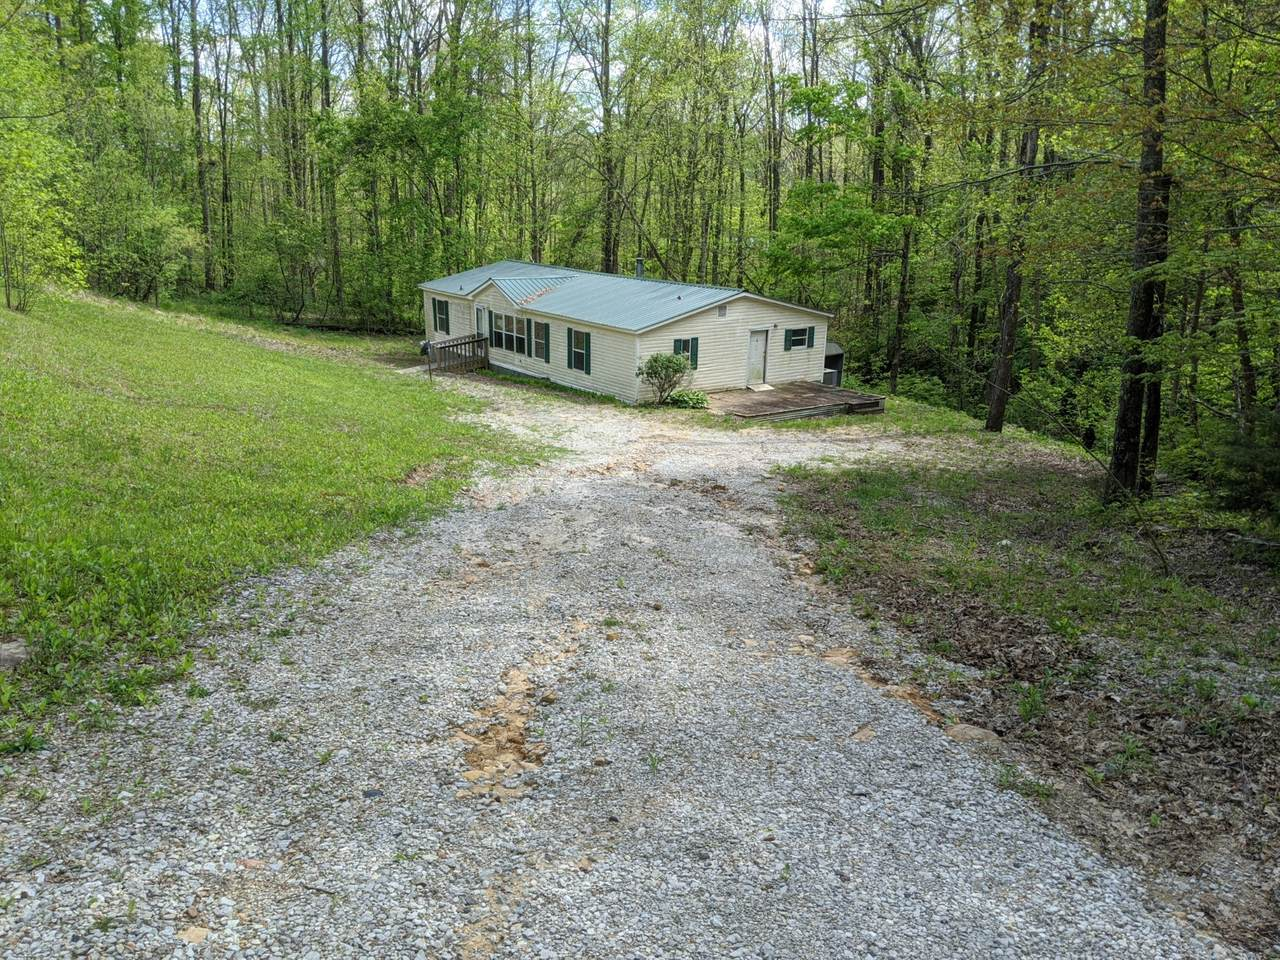 97 Wilkerson Cove Rd - Photo 1